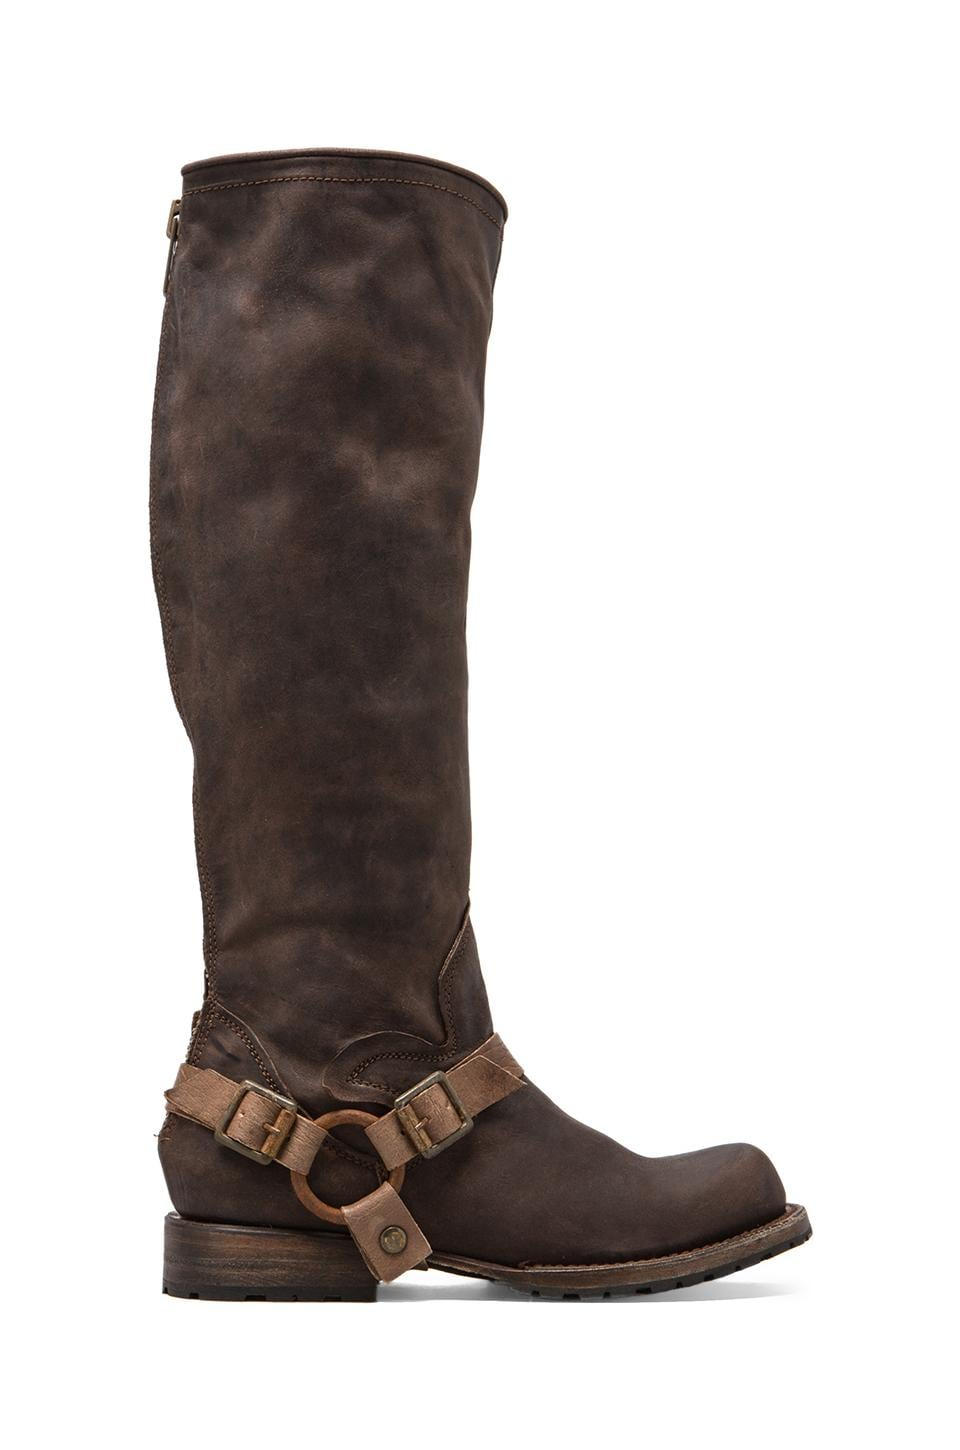 Freebird by Steven Haavn Boot in Brown